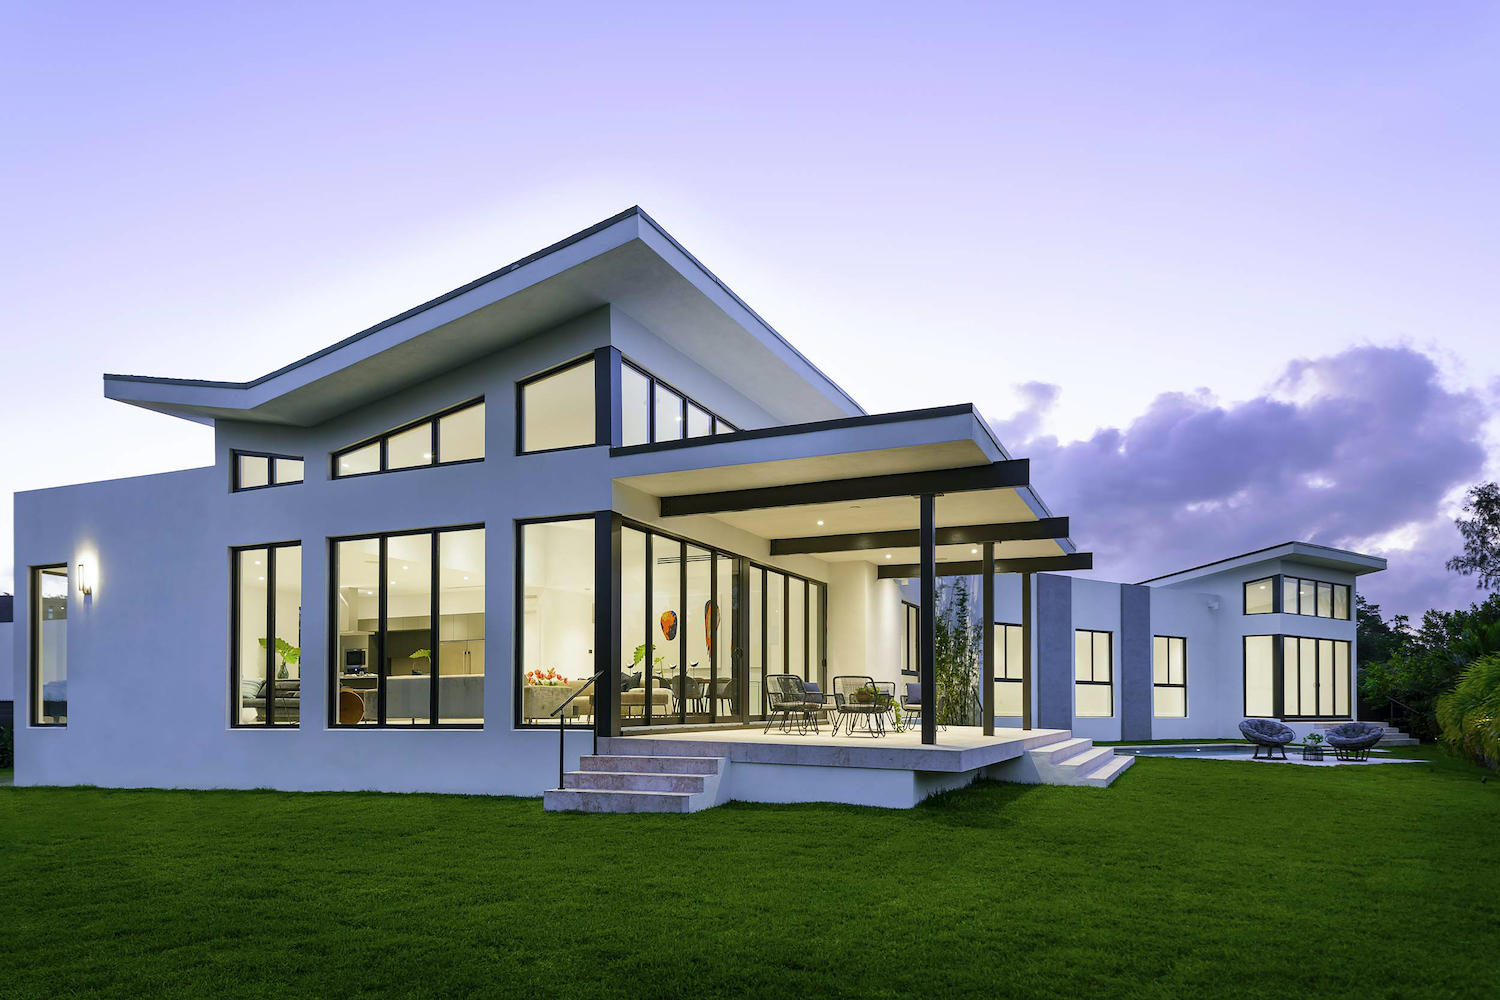 Enchanted Point in Miami, Florida by SDH Studio Architecture + Design